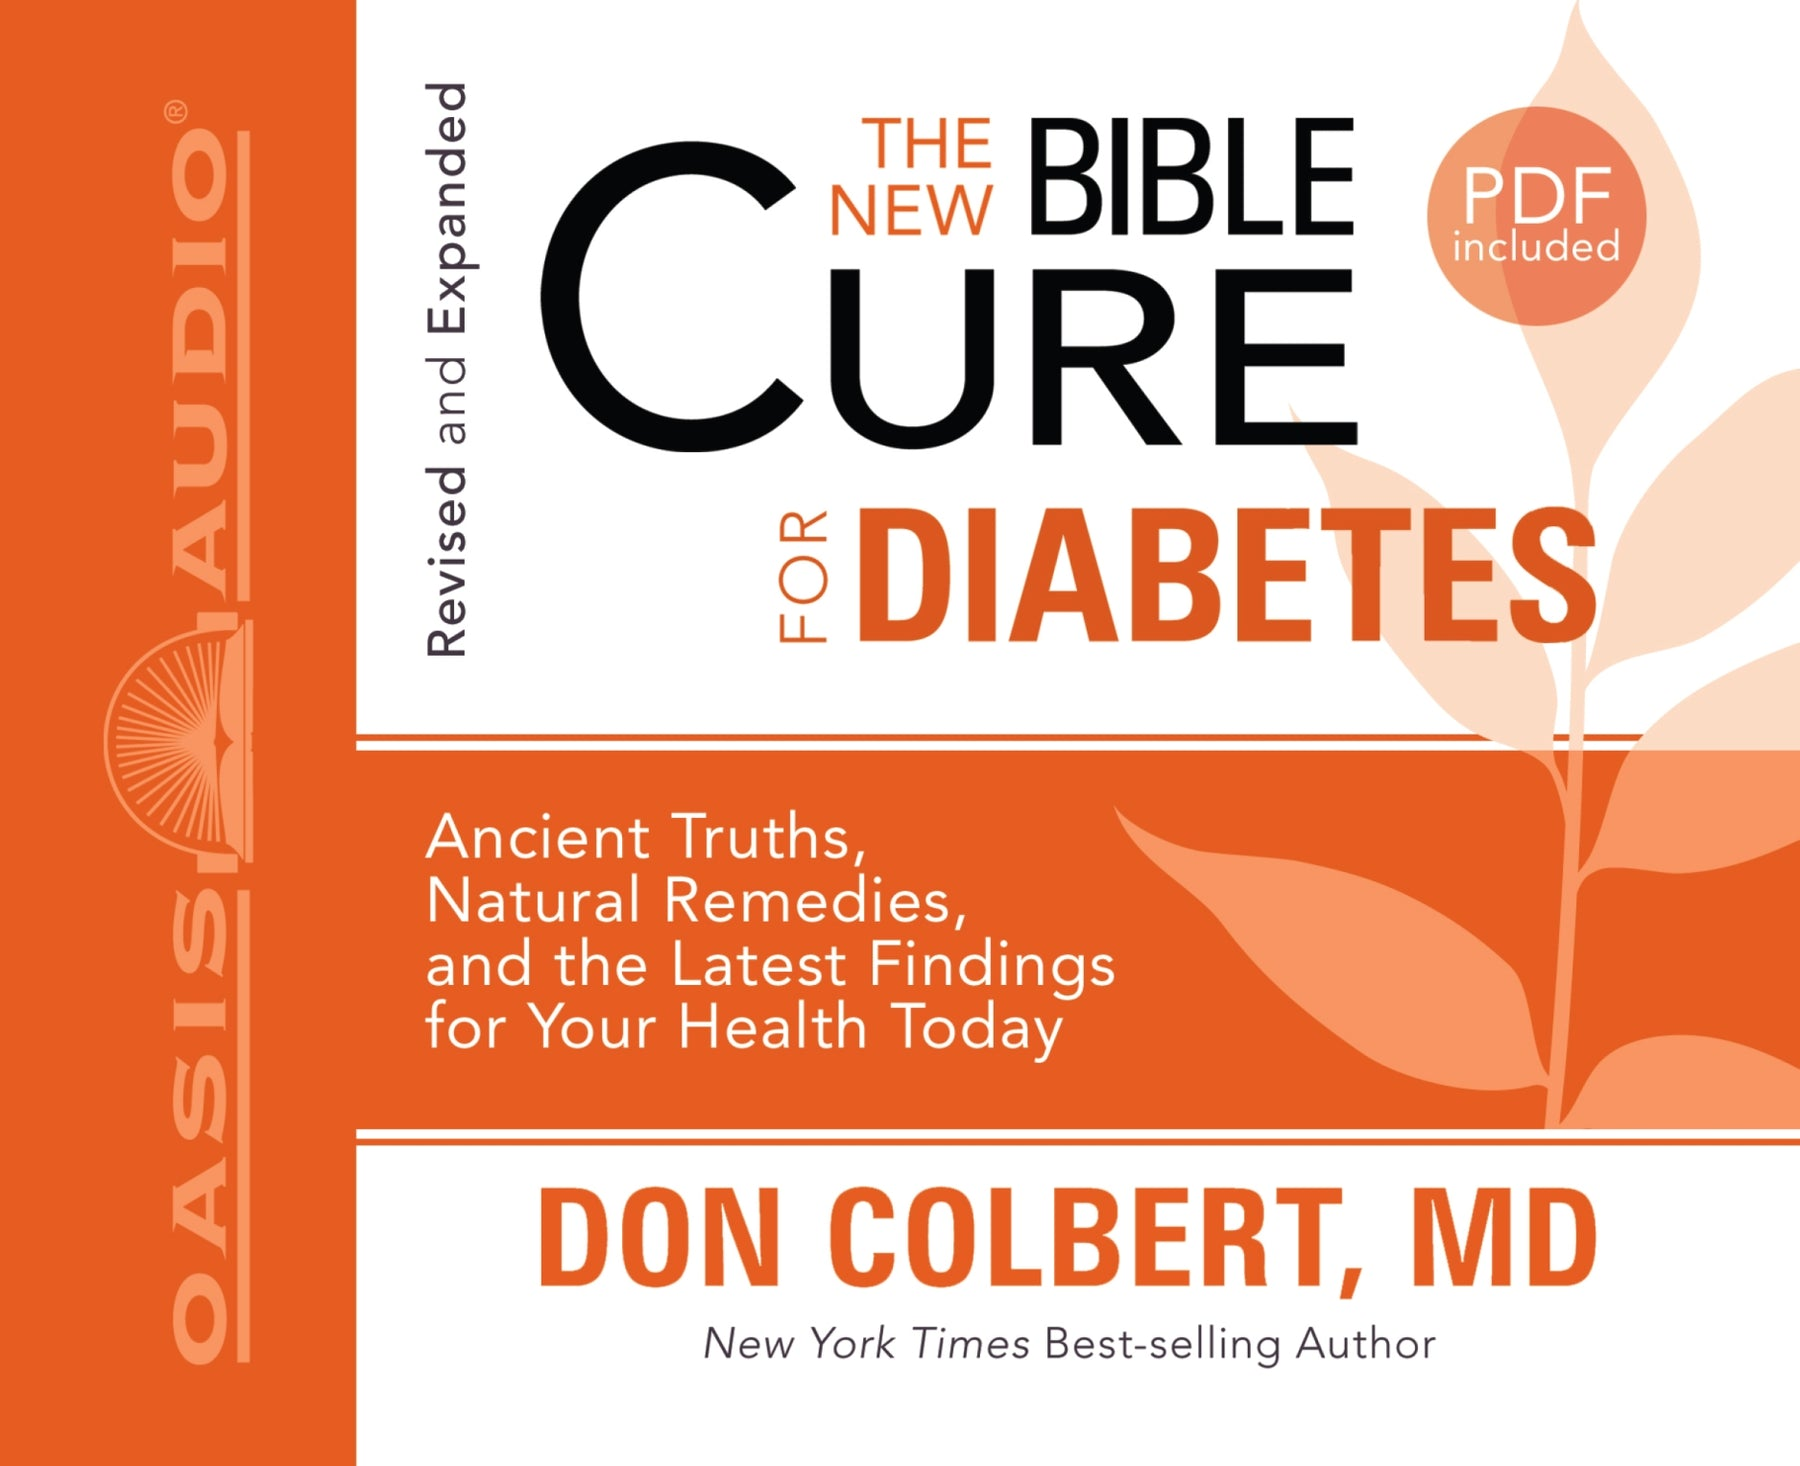 The New Bible Cure for Diabetes (Library Edition)